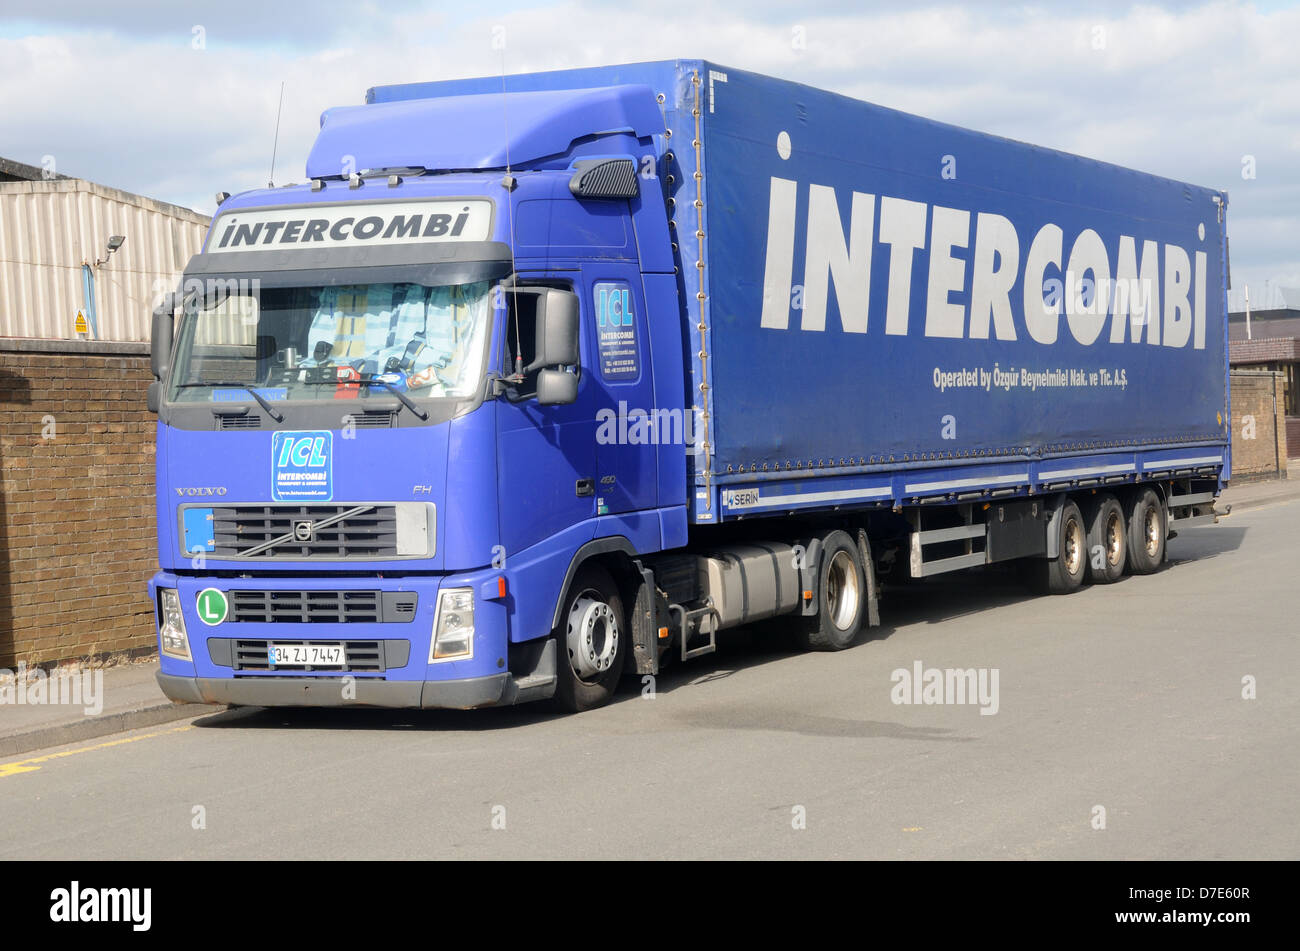 A Volvo FH 480 Euro 5 tractor unit and trailer in the livery of Turkish carrier Intercombi in Leicester, Leicestershire, - Stock Image